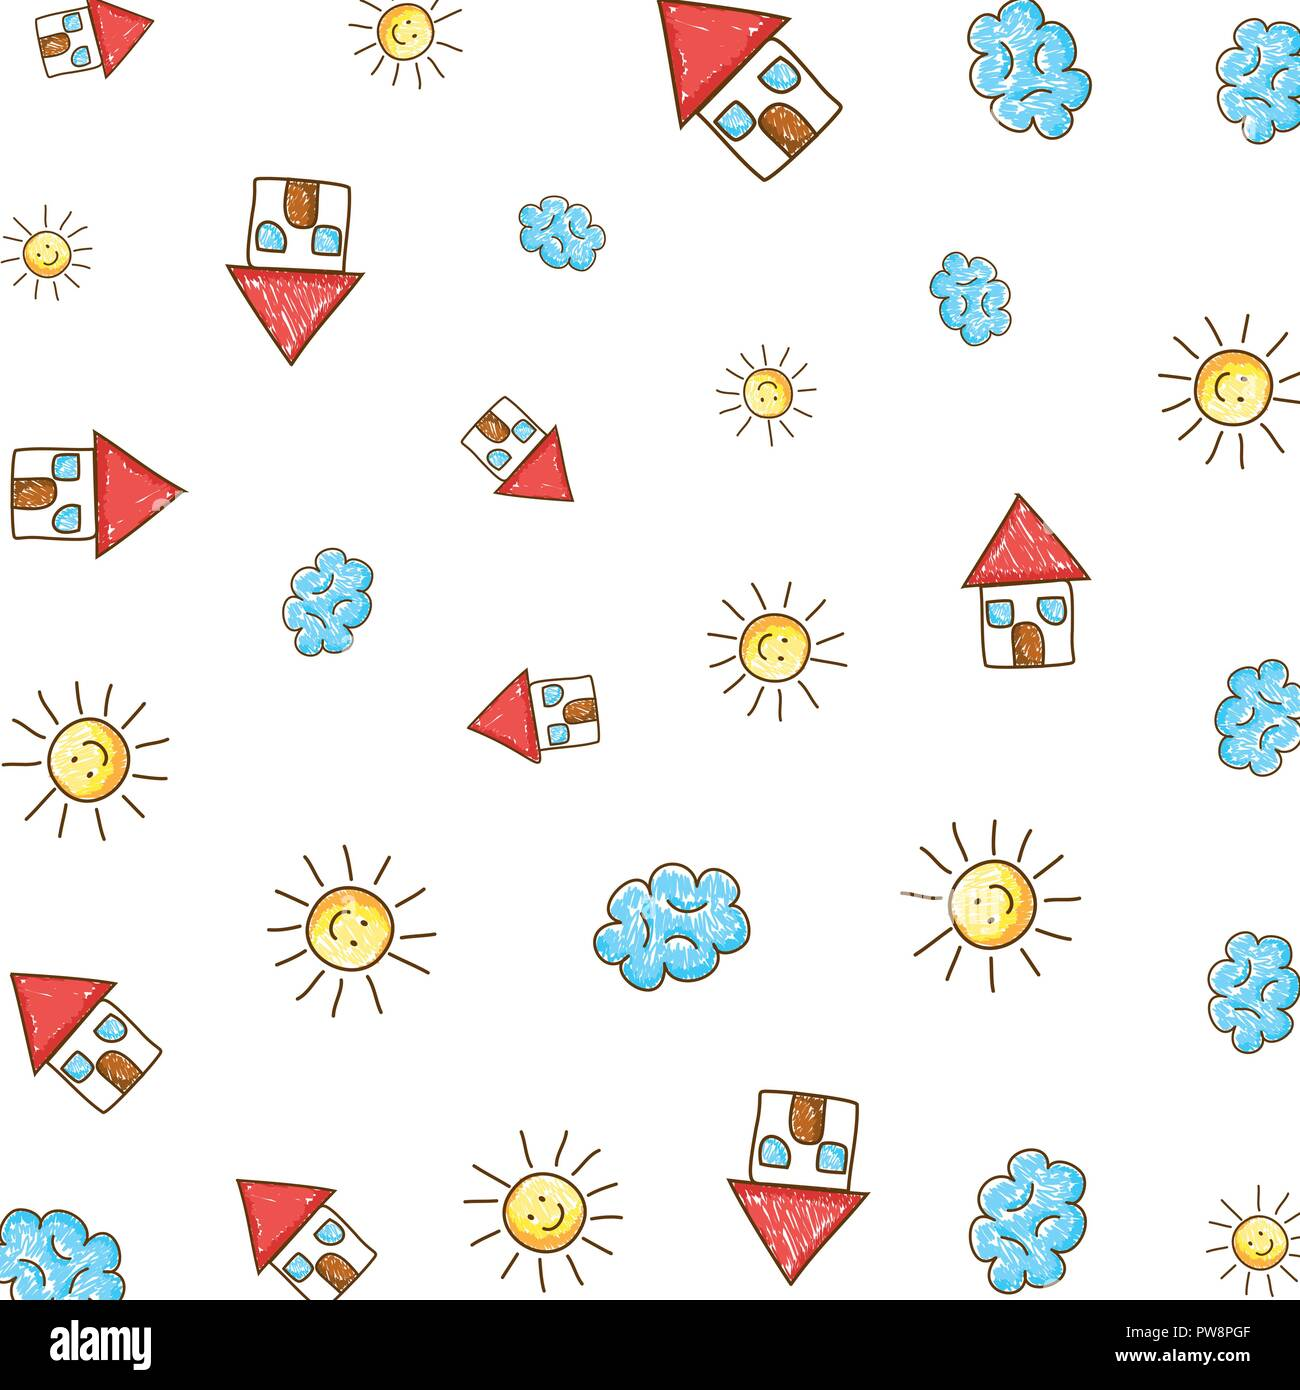 cute houses with suns and clouds drawing pattern - Stock Vector